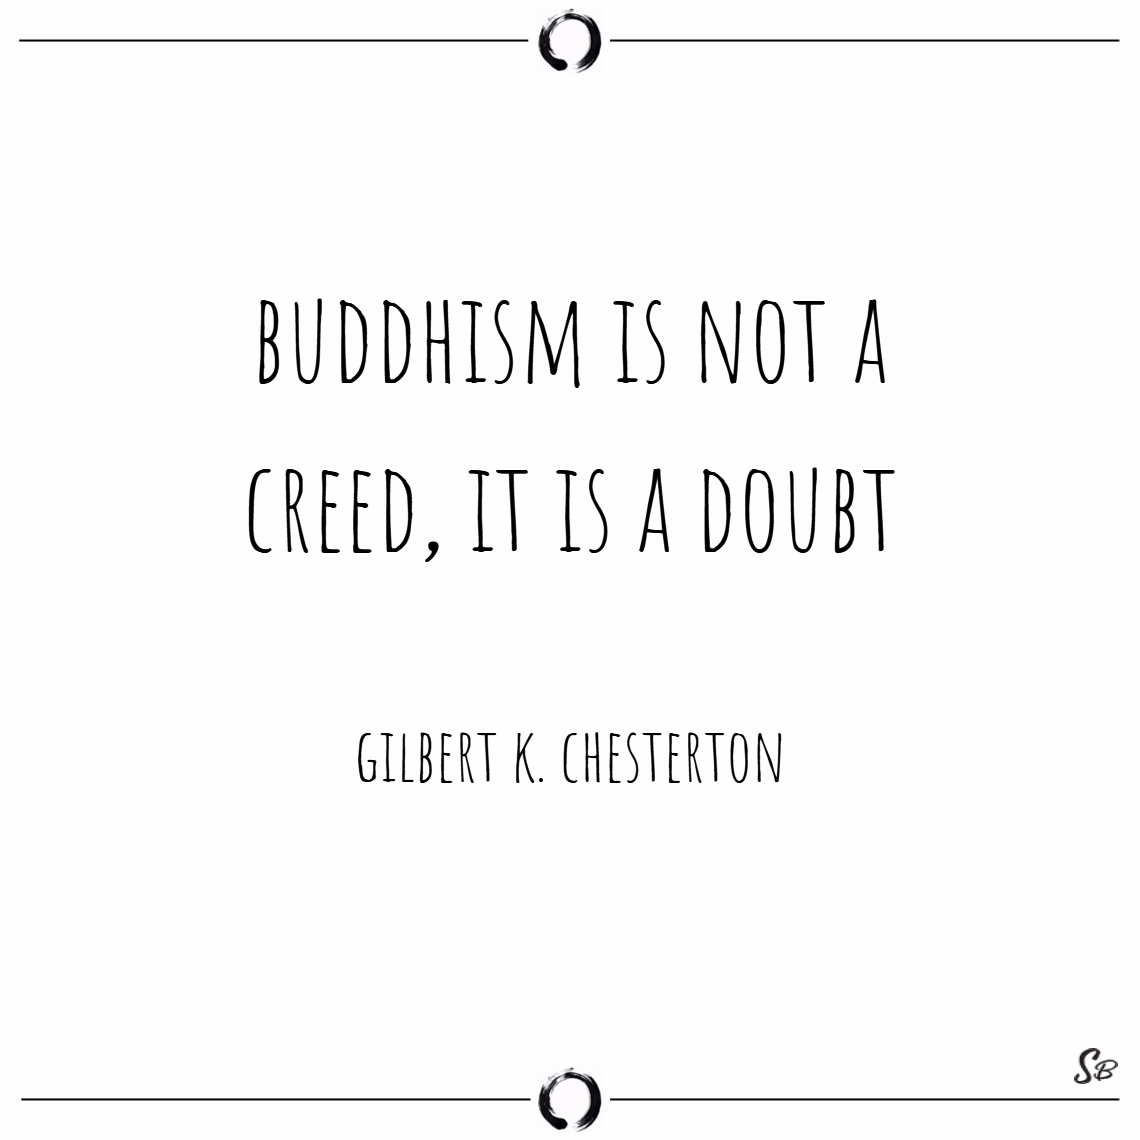 Buddhism is not a creed, it is a doubt. – gilbert k. chesterton